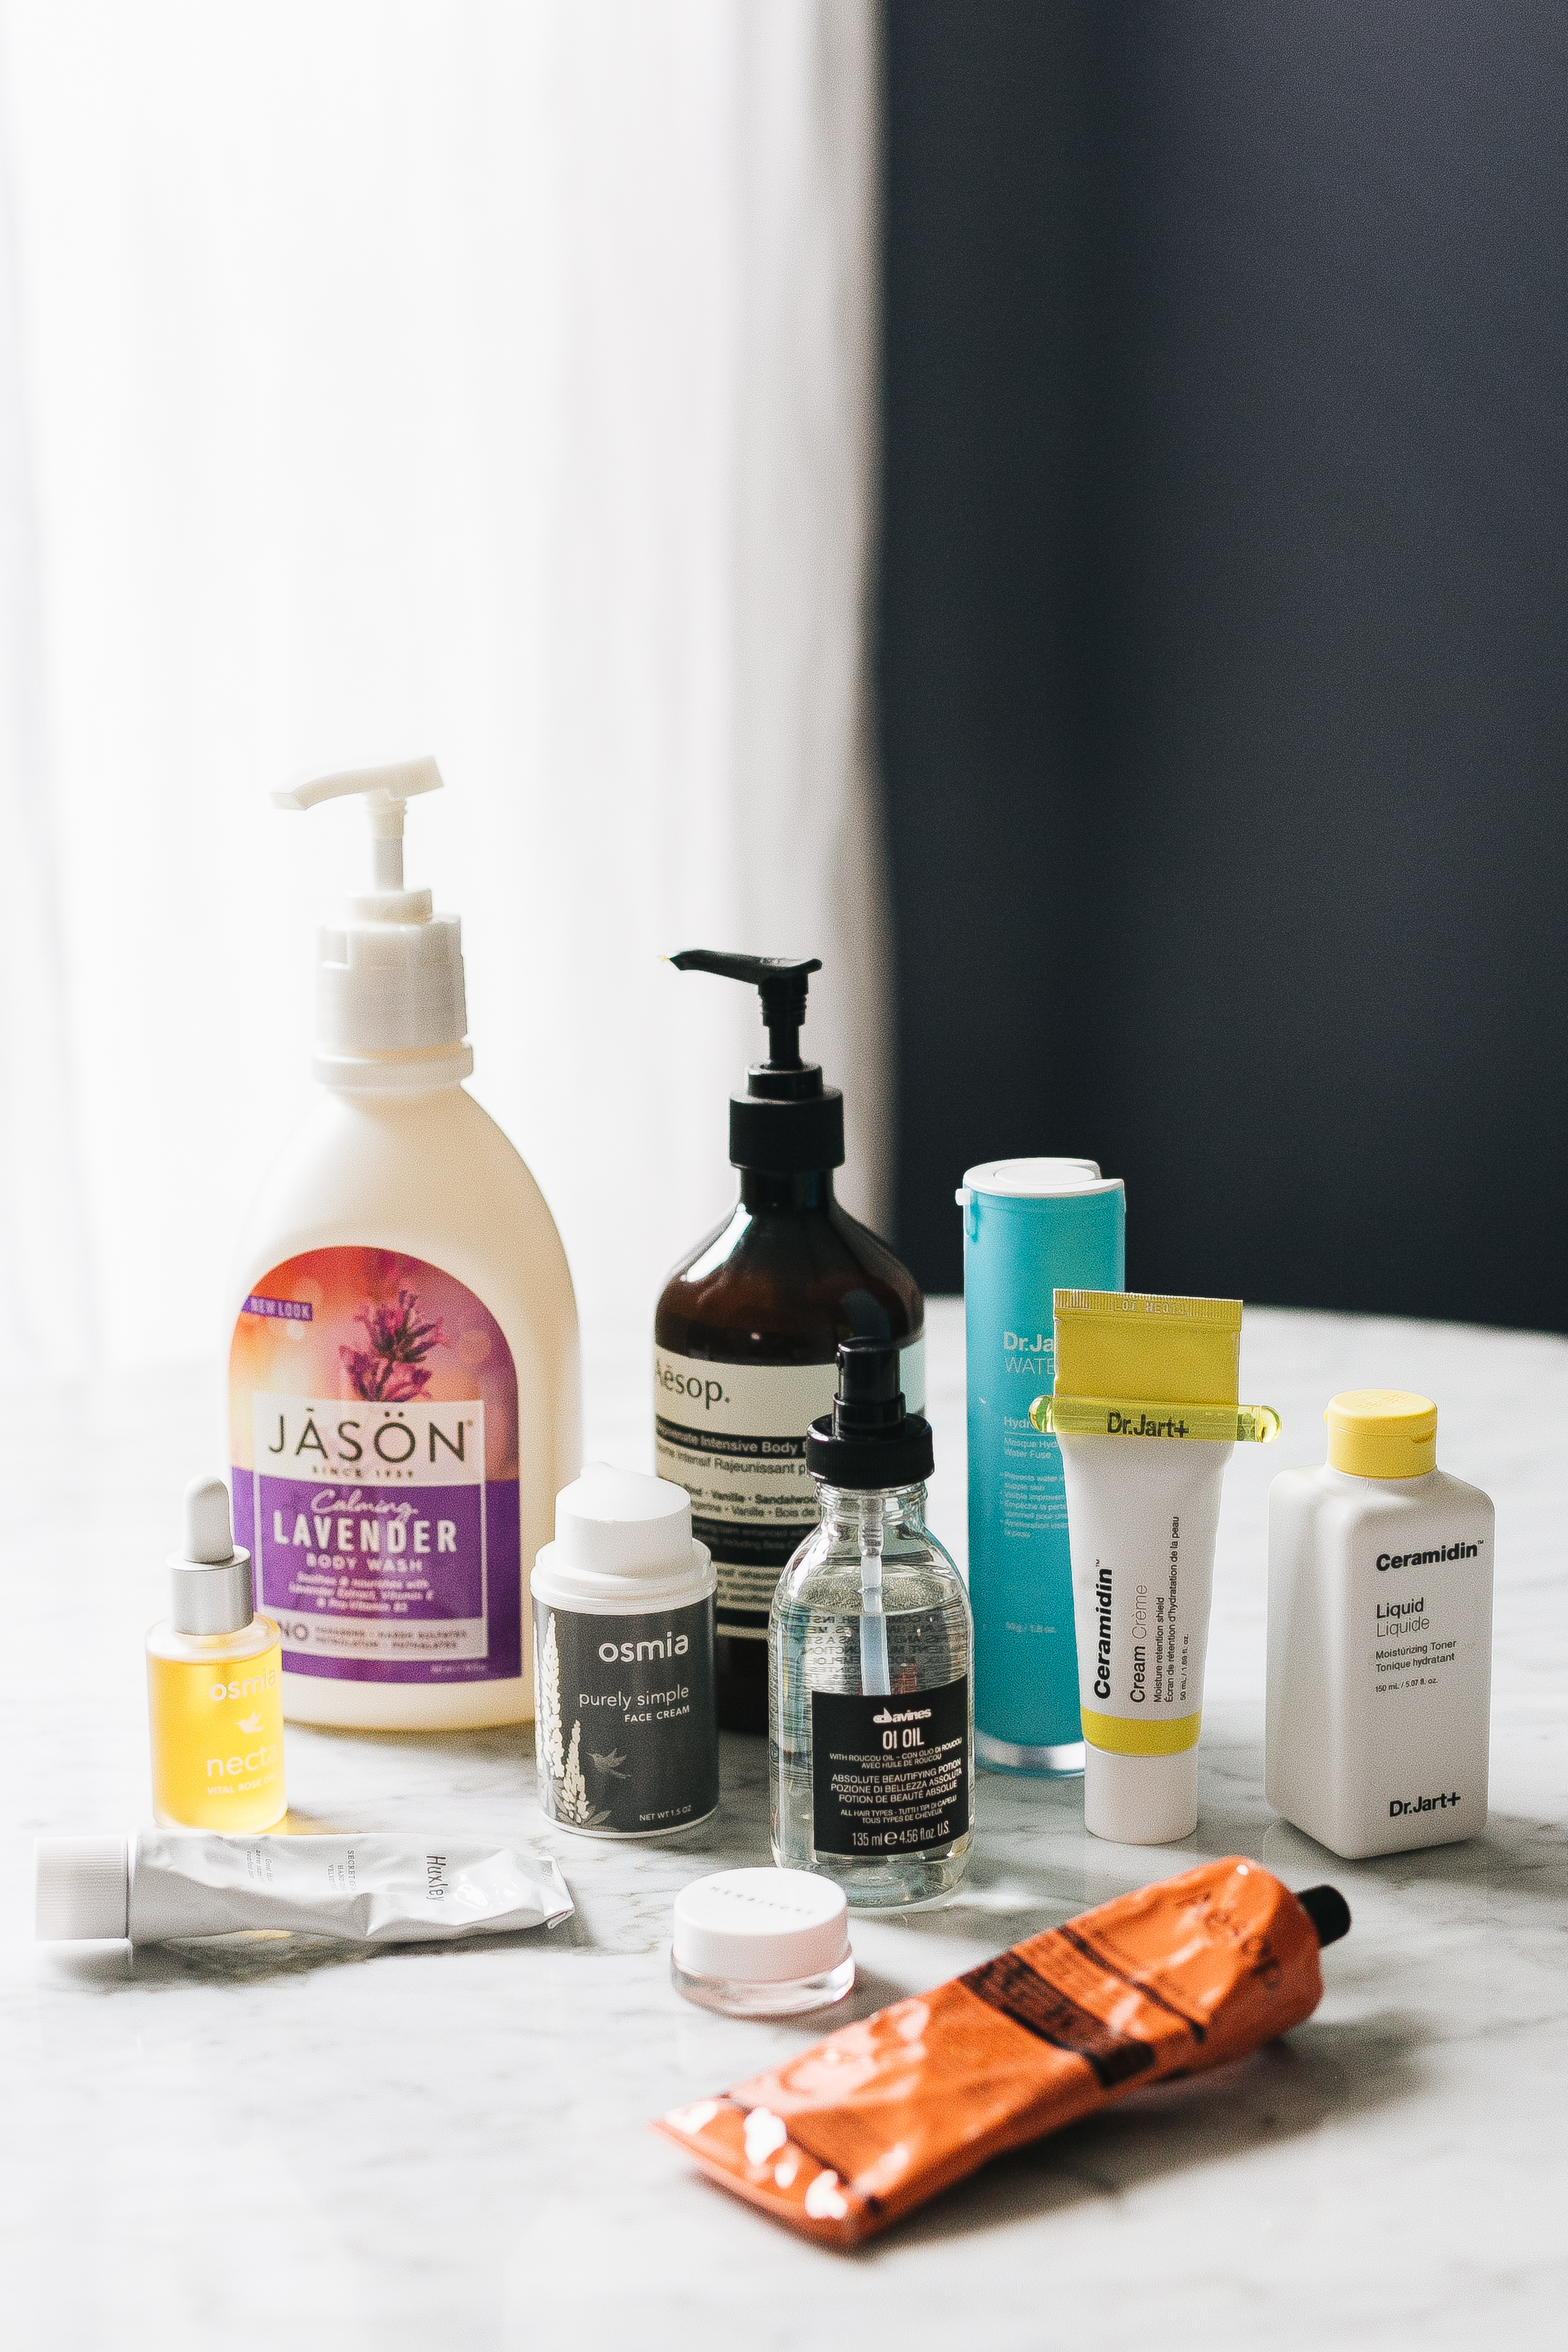 My Holy Grail Winter Skincare Products for hair, face, and body. #skincare #winterskincare #skincareroutine #moisturize #facialproducts #skinproducts #beauty #beautyproducts #organicbeauty #cleanbeauty